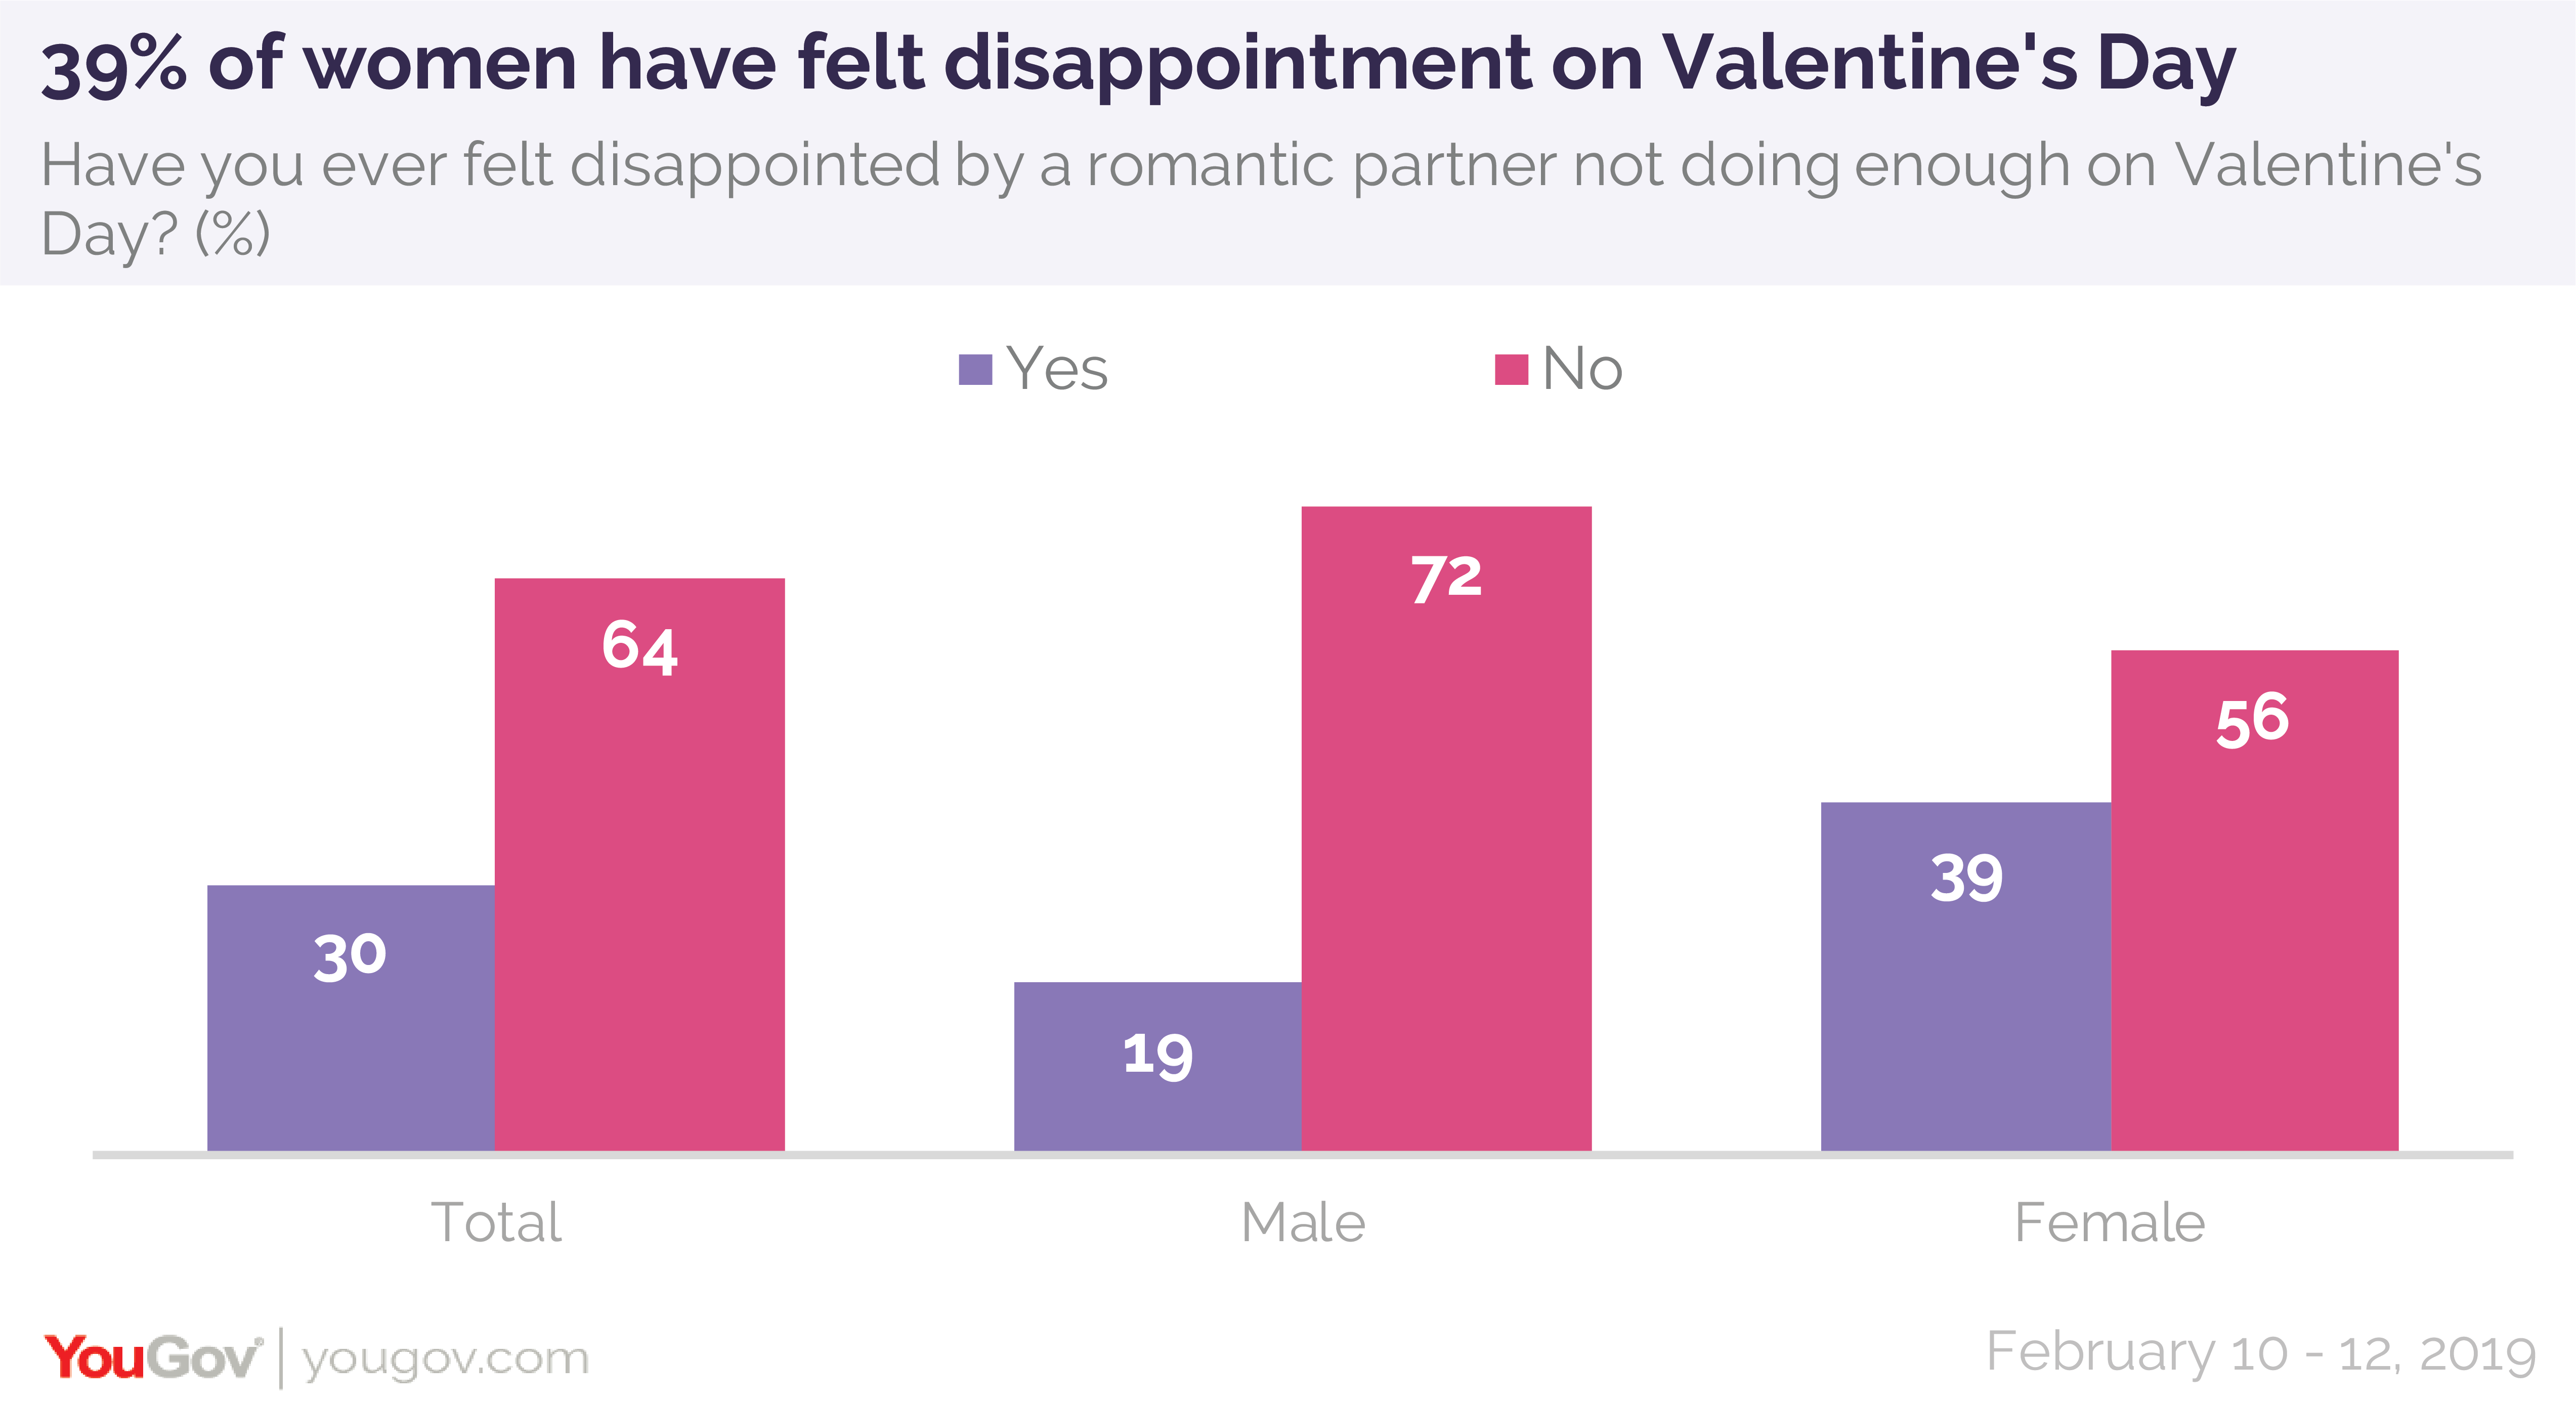 39% of women have felt disappointment on Valentine's Day, according to a YouGov/Economist poll